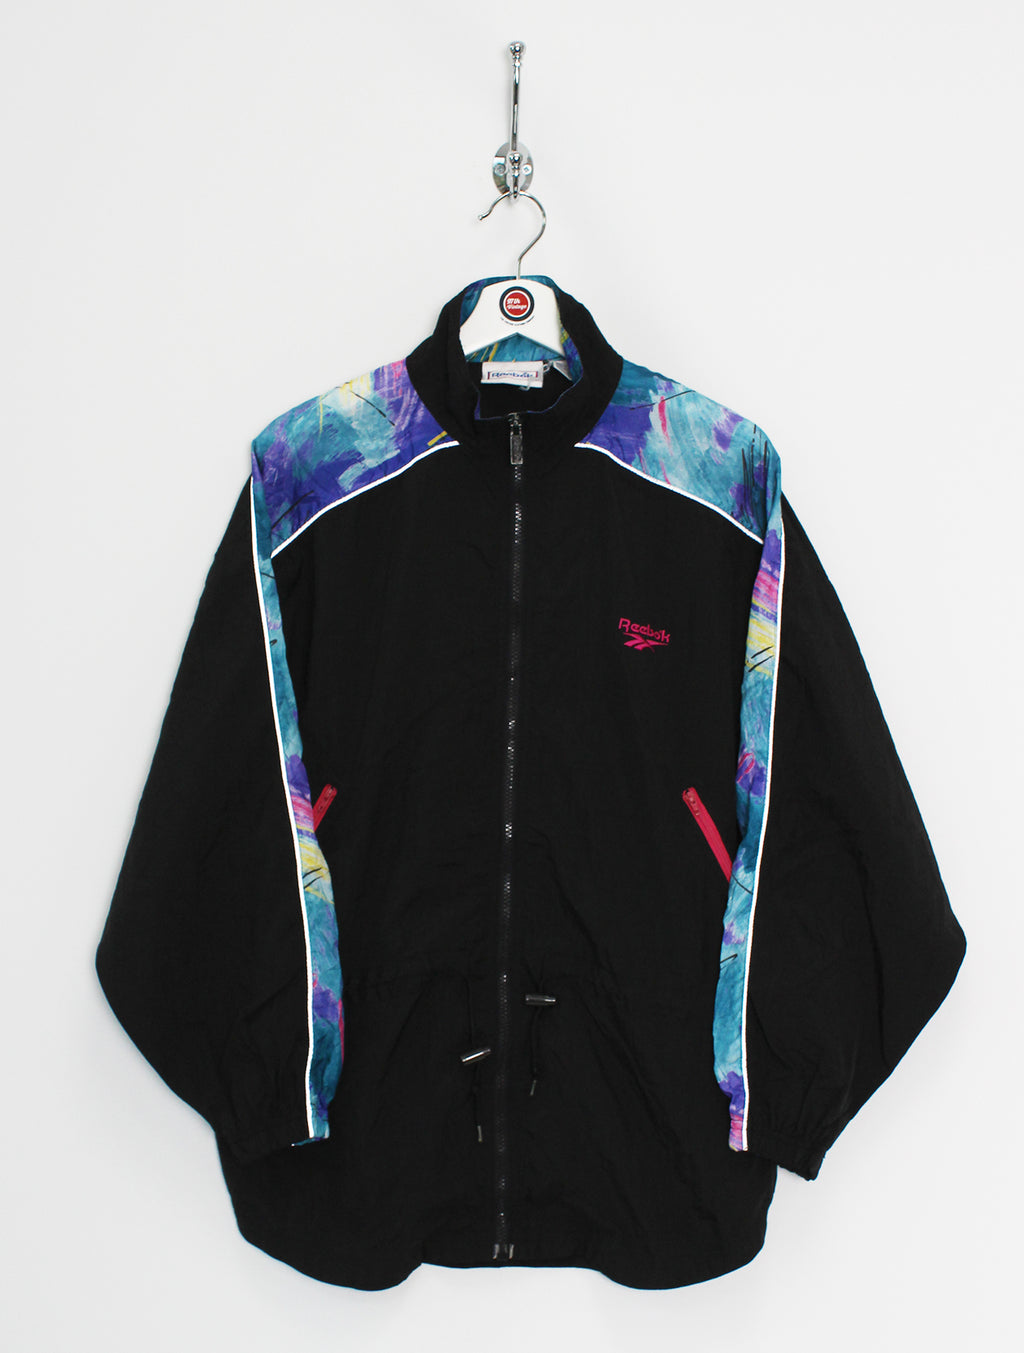 Reebok Shell Suit Jacket (S)